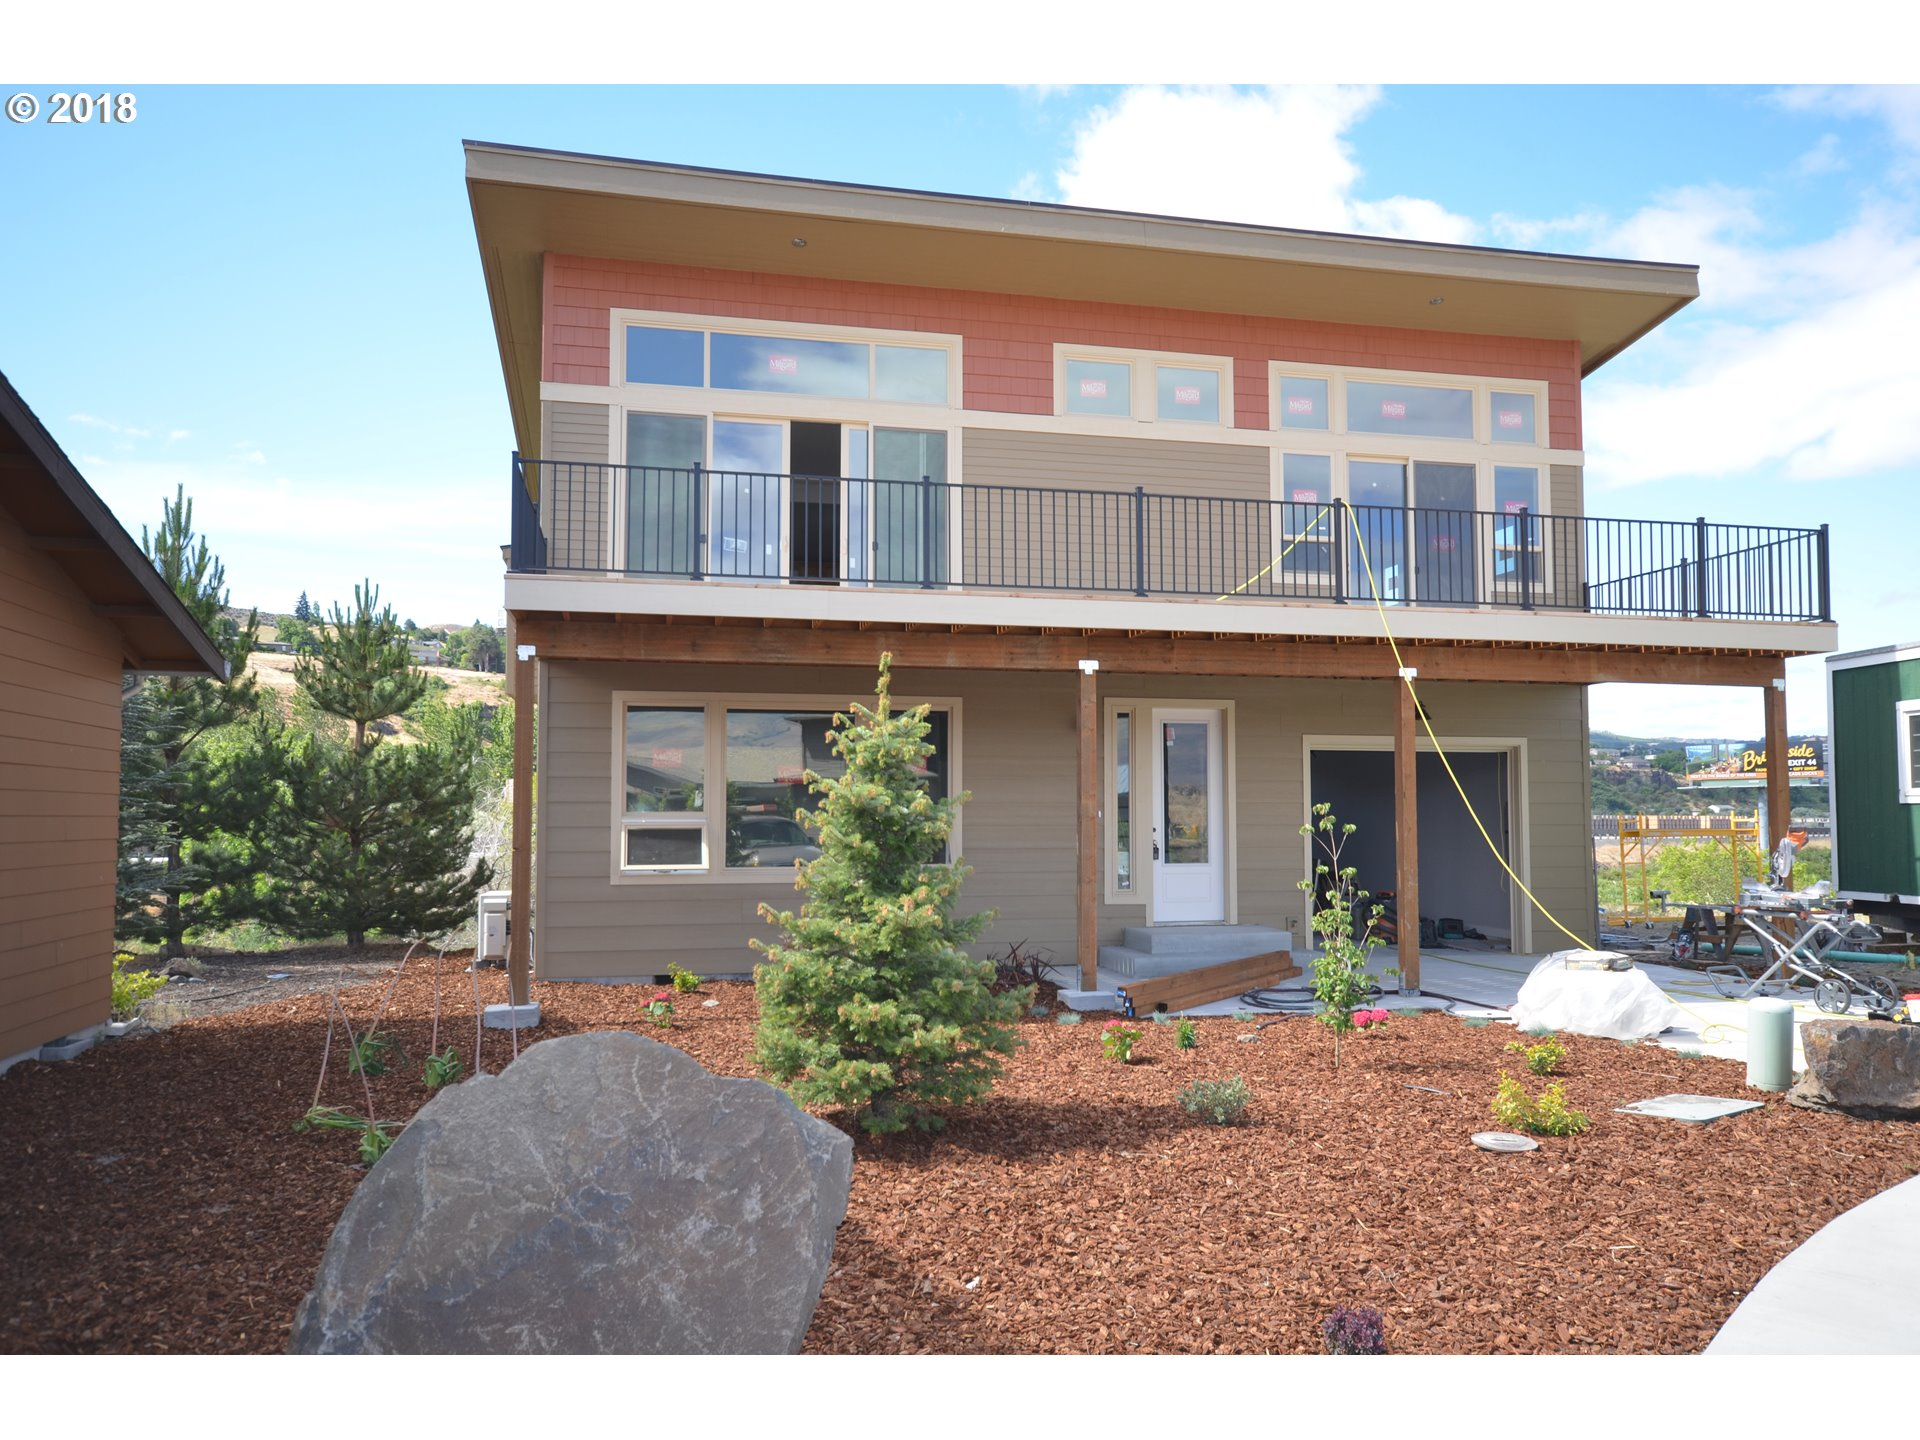 164 BLUE HERON CT, The Dalles, OR 97058